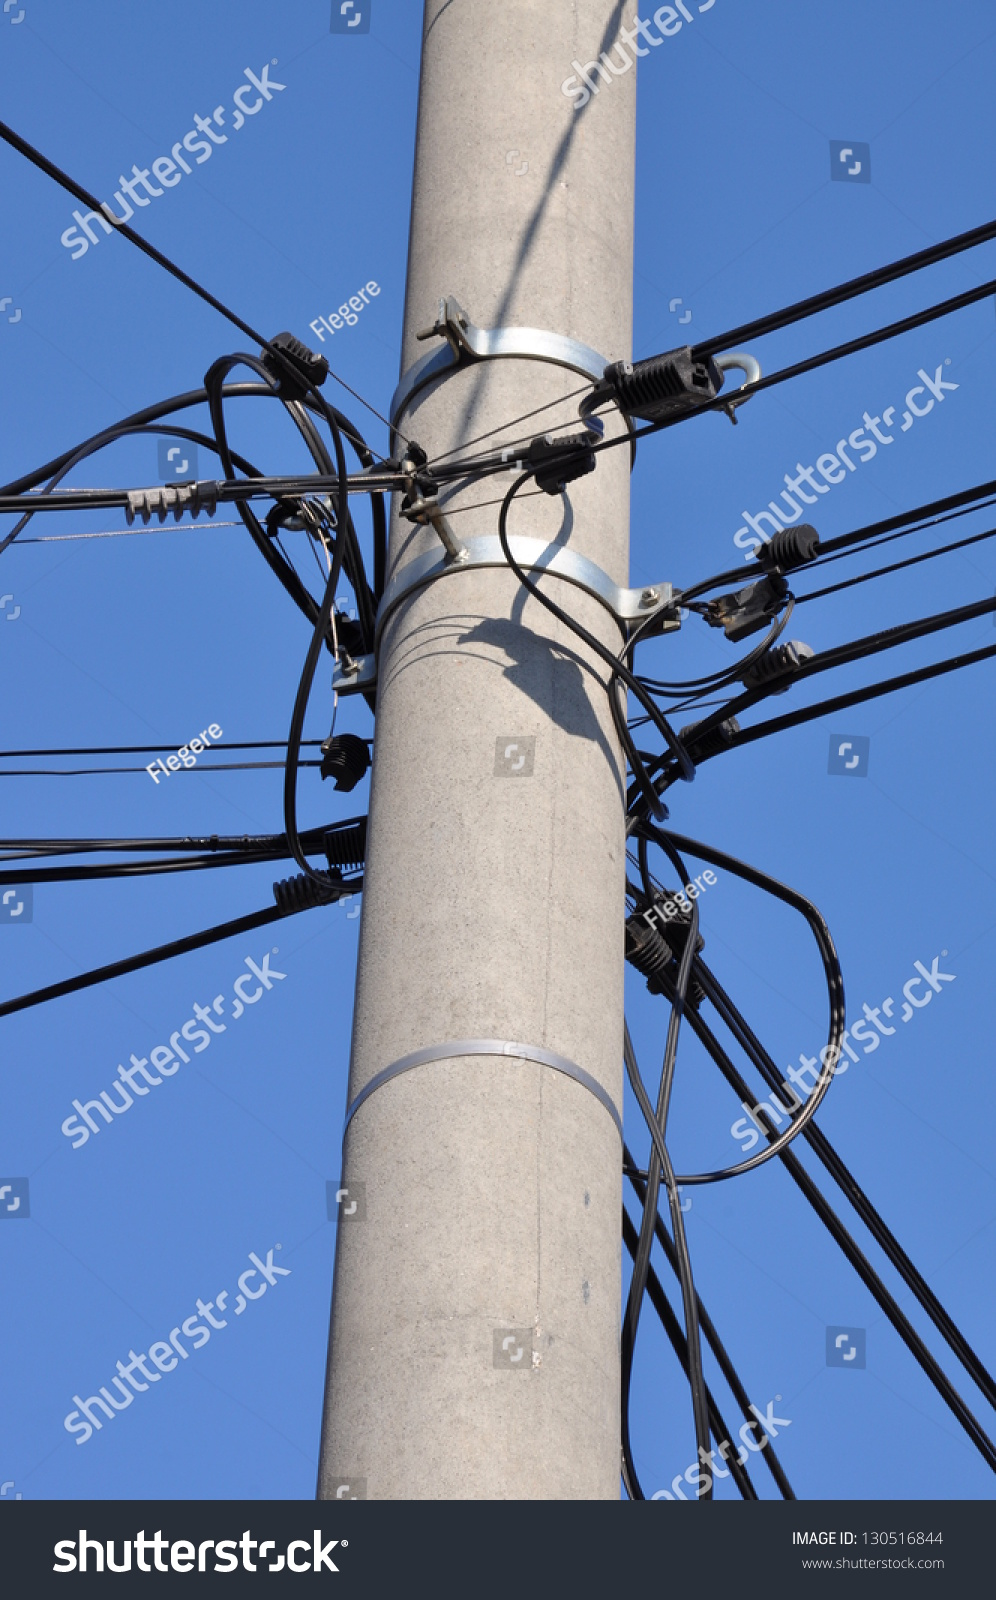 Telephone Cable Lines On Pole Against Stock Photo Edit Now Wiring Junction Block A Blue Sky